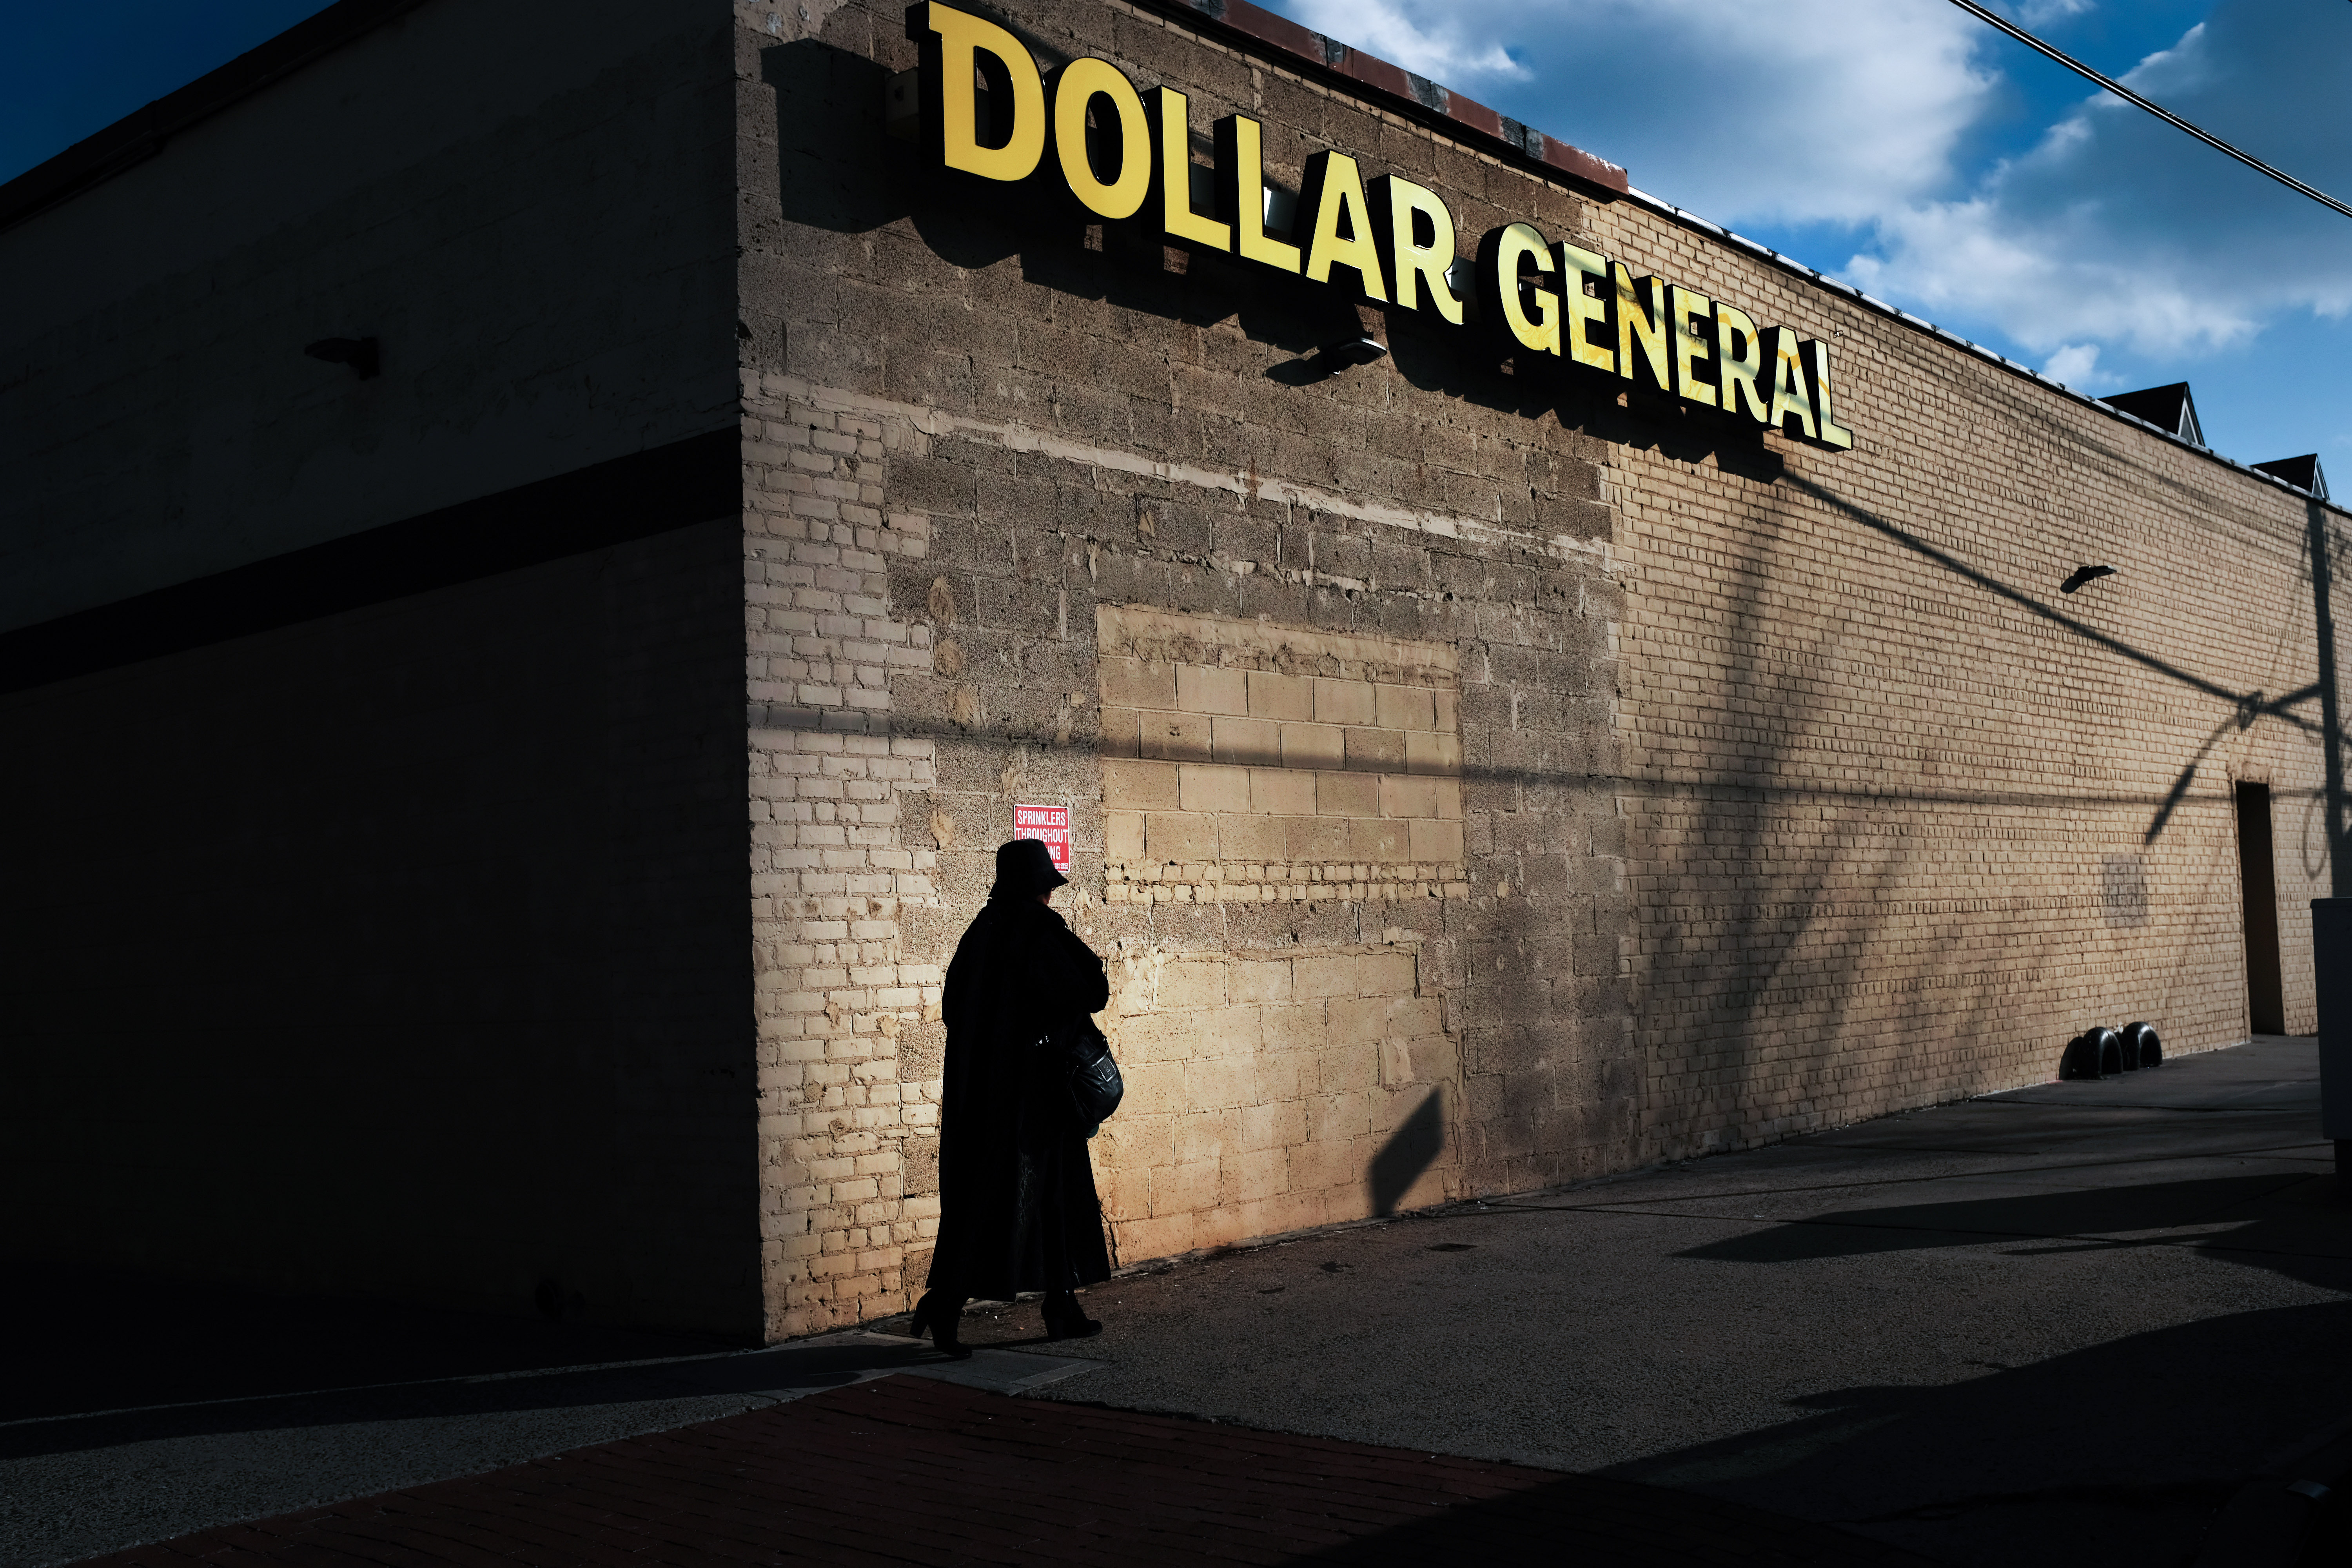 A woman walks by a Dollar General store on December 11, 2018 in the Brooklyn borough of New York City.